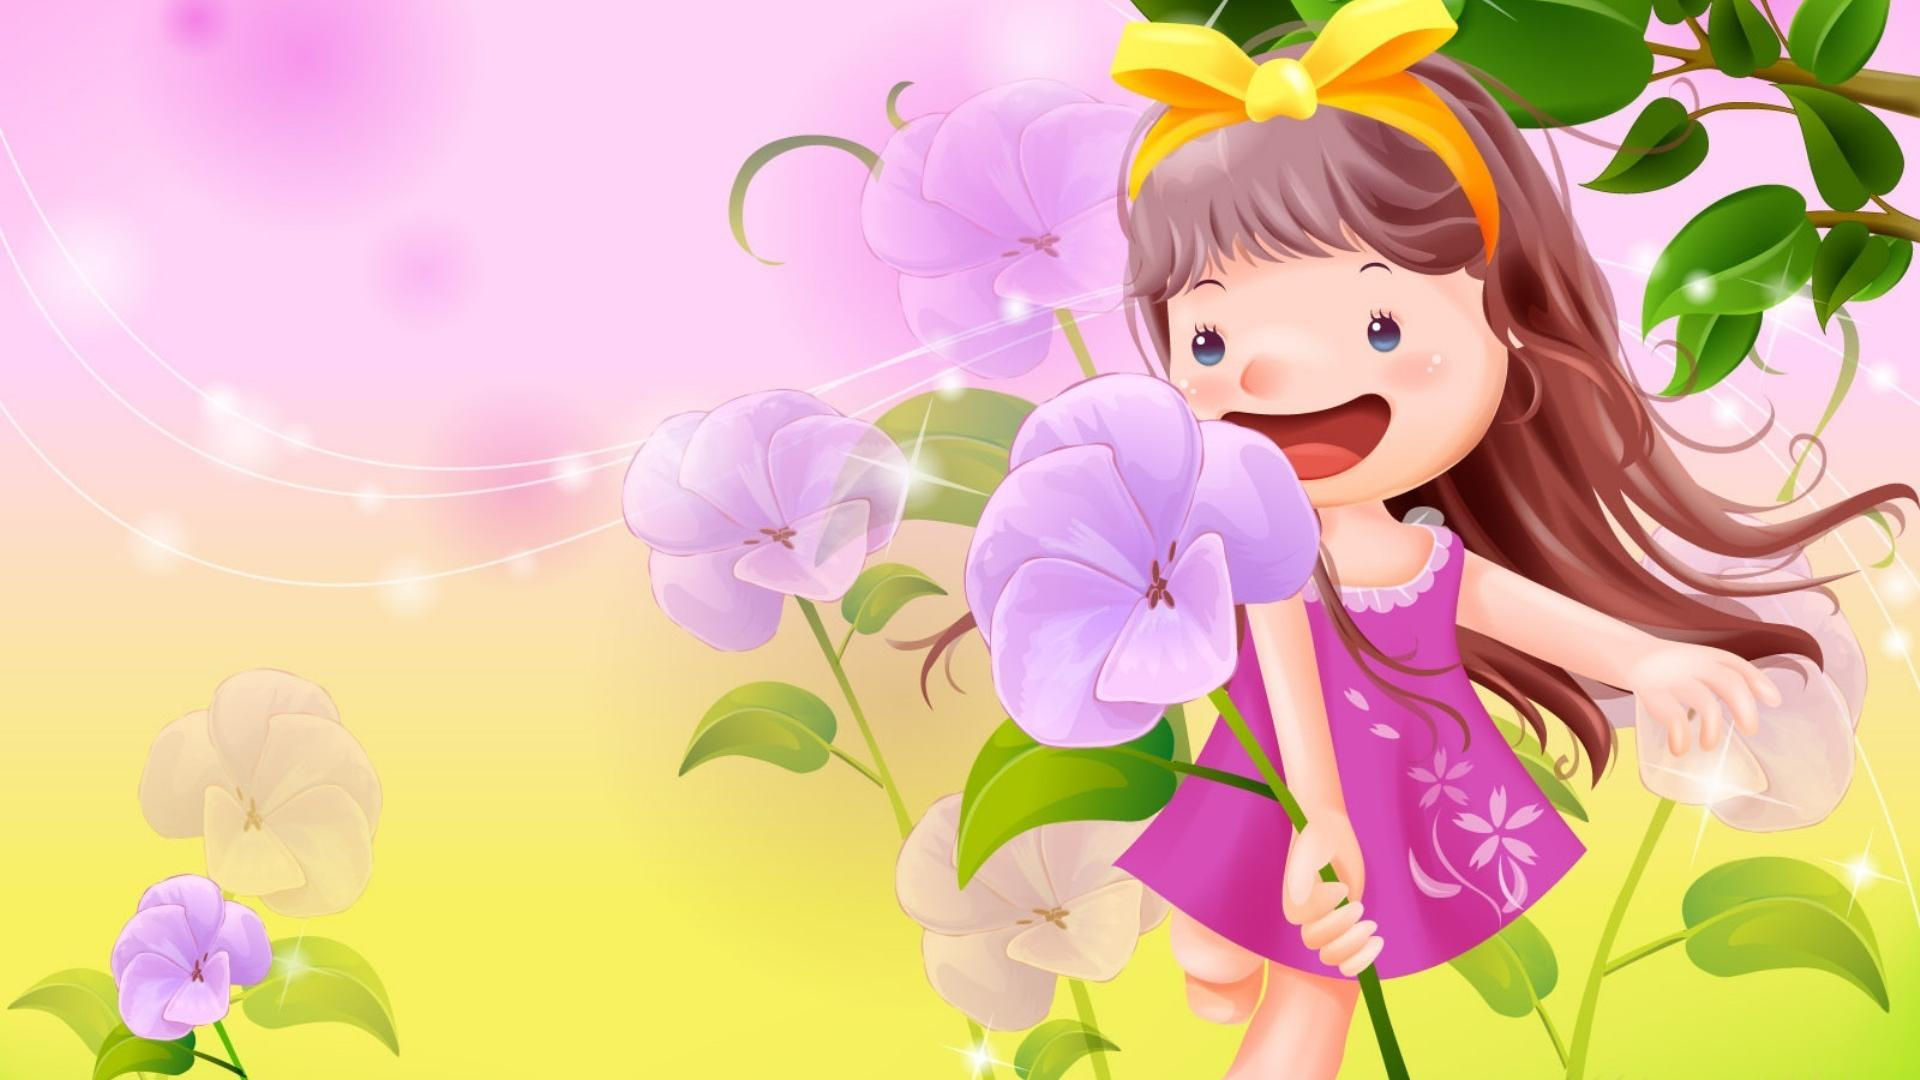 funny cartoons wallpapers funny cartoons wallpapers funny cartoons hd 1920x1080